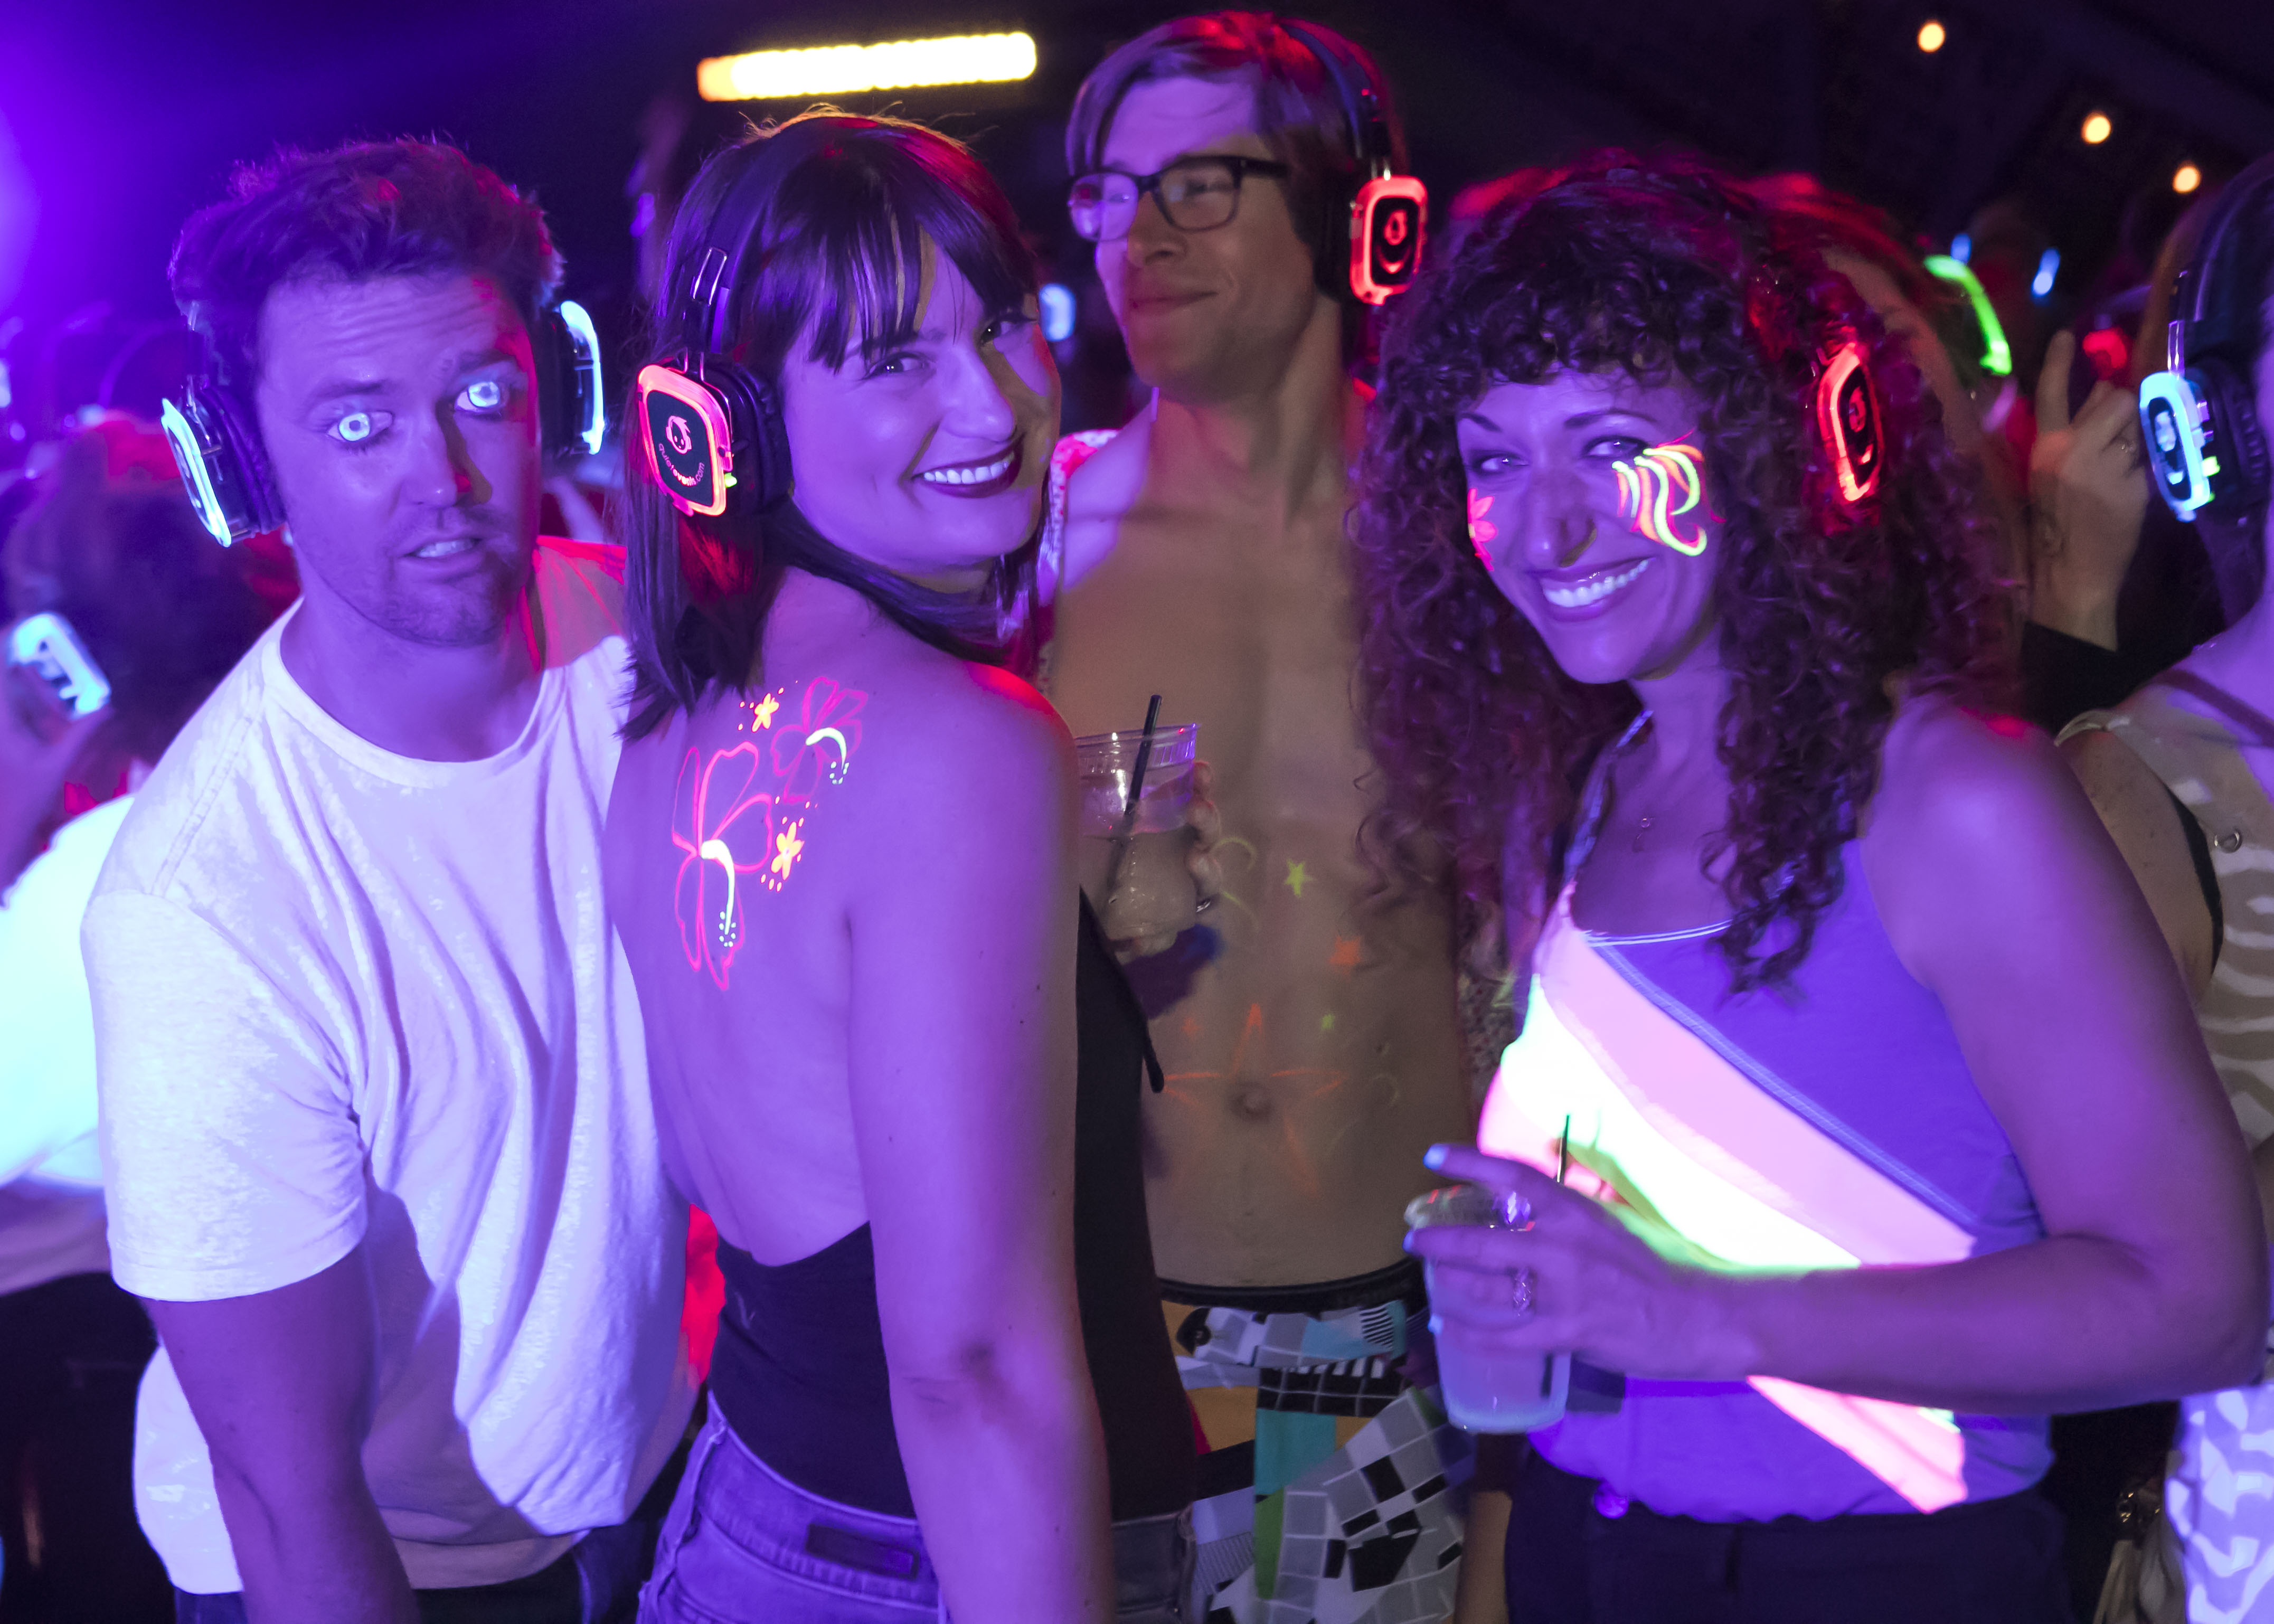 Experience A Glowfair Silent Disco Ten City Blocks Two Ses Live Bands And Dj Acts It